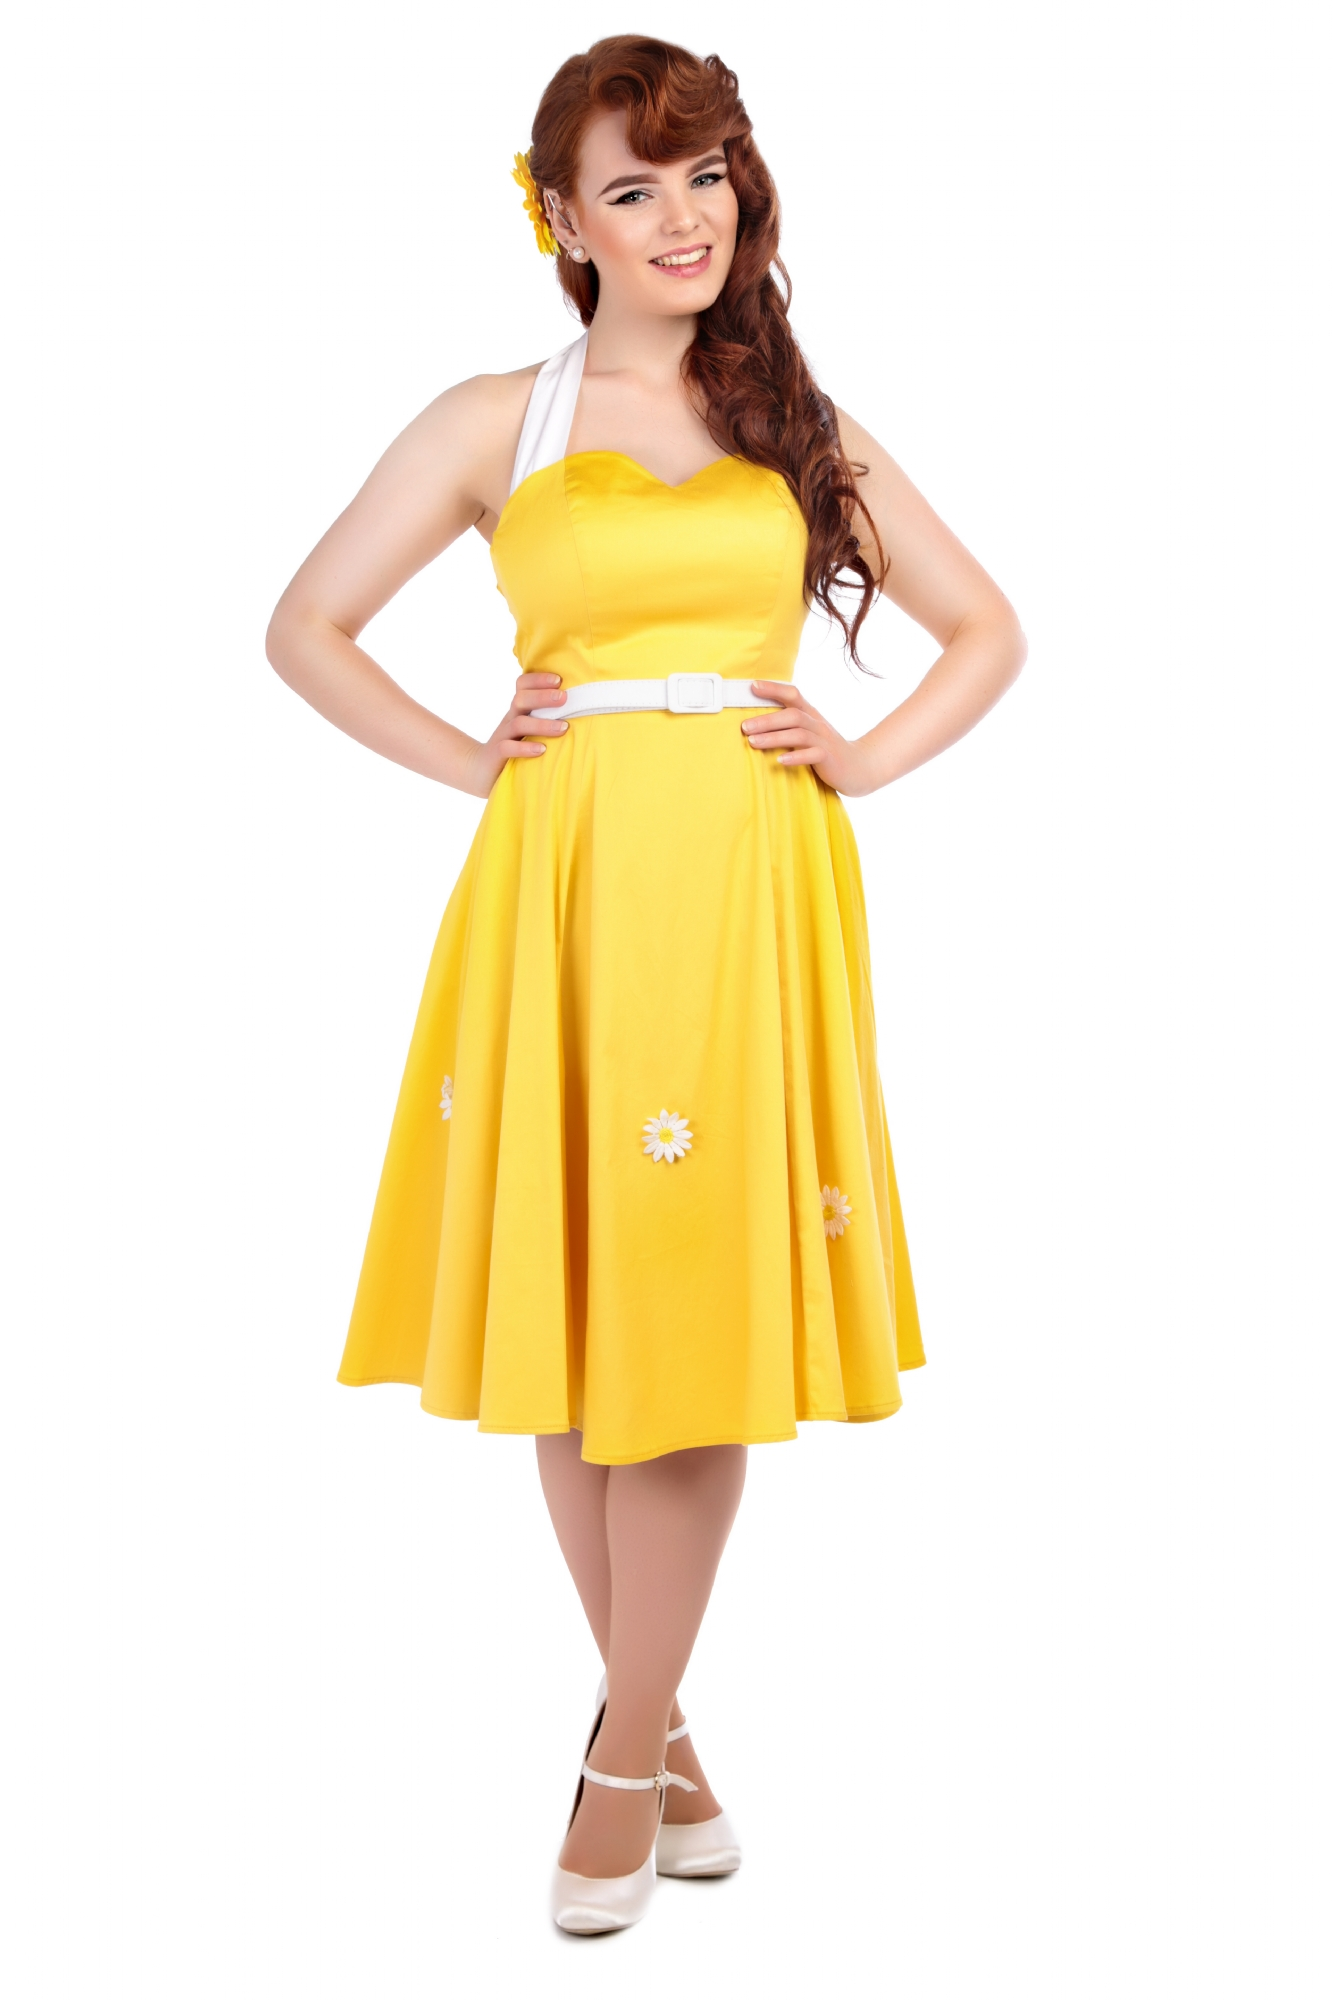 2f41af7c4 COLLECTIF VINTAGE YELLOW DAISY SWING DRESS SZ 8-22 1950 S FLARED